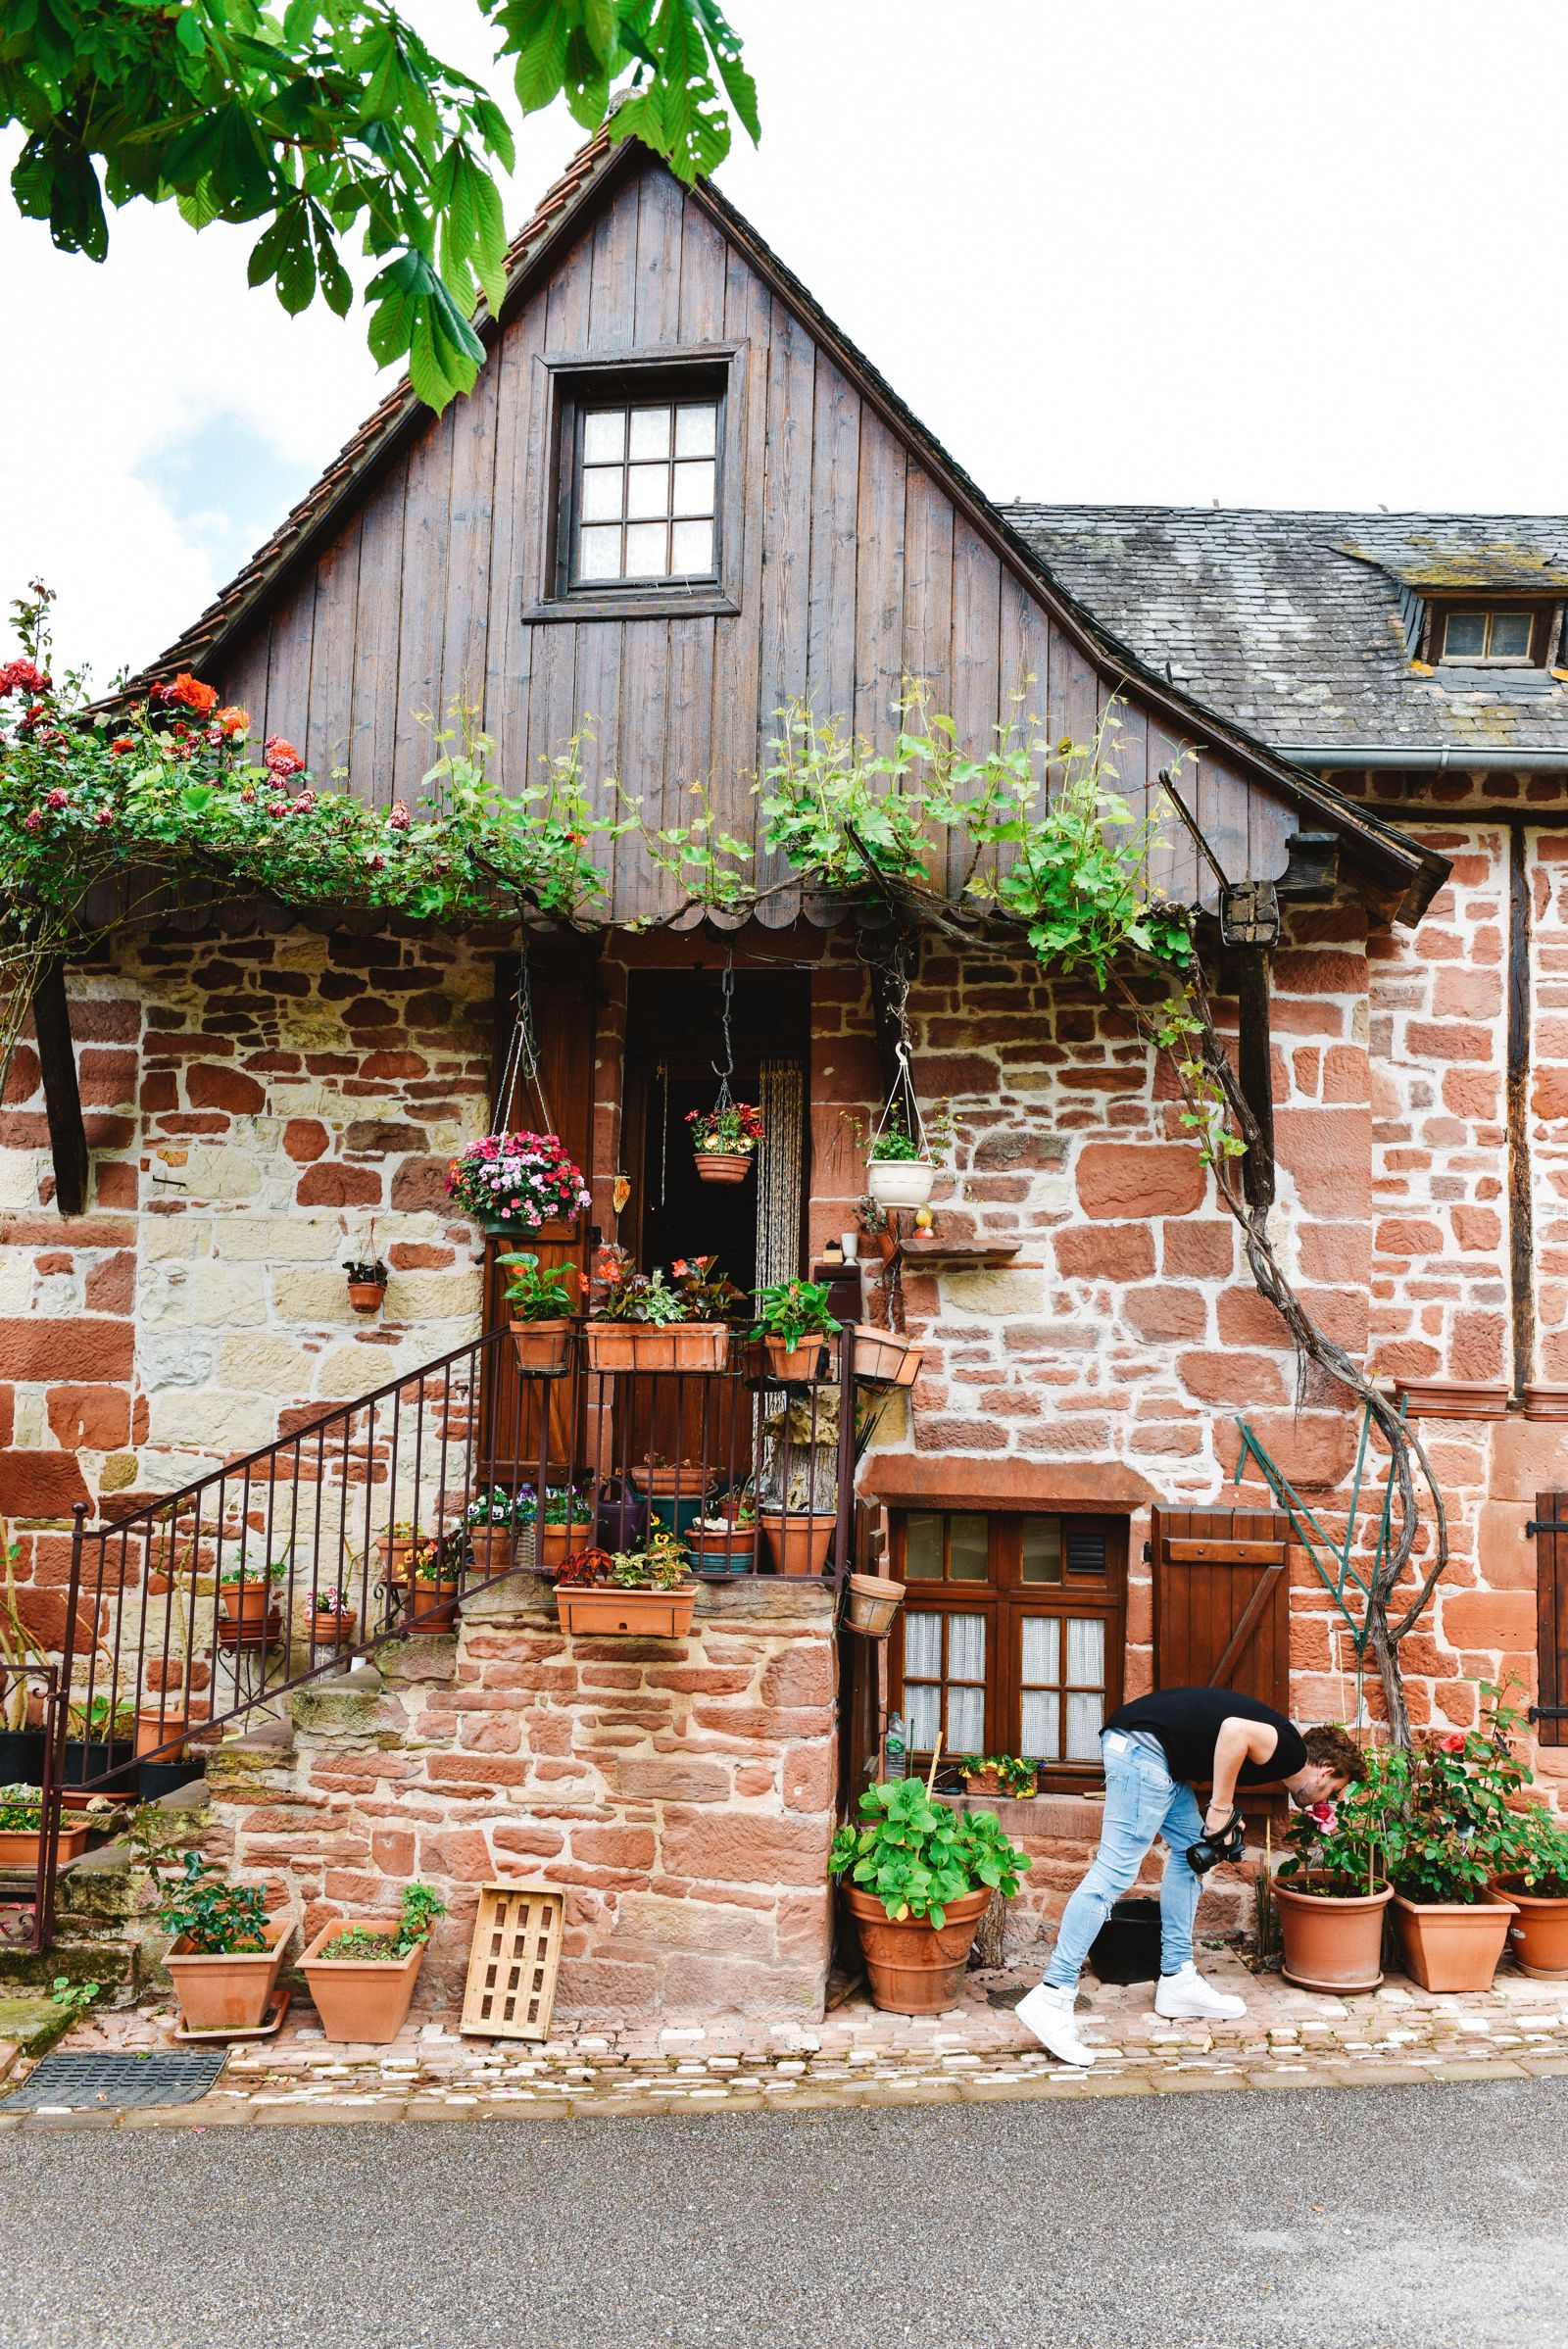 This Is The Most Beautiful Village In France - Collonges-La-Rouge (4)